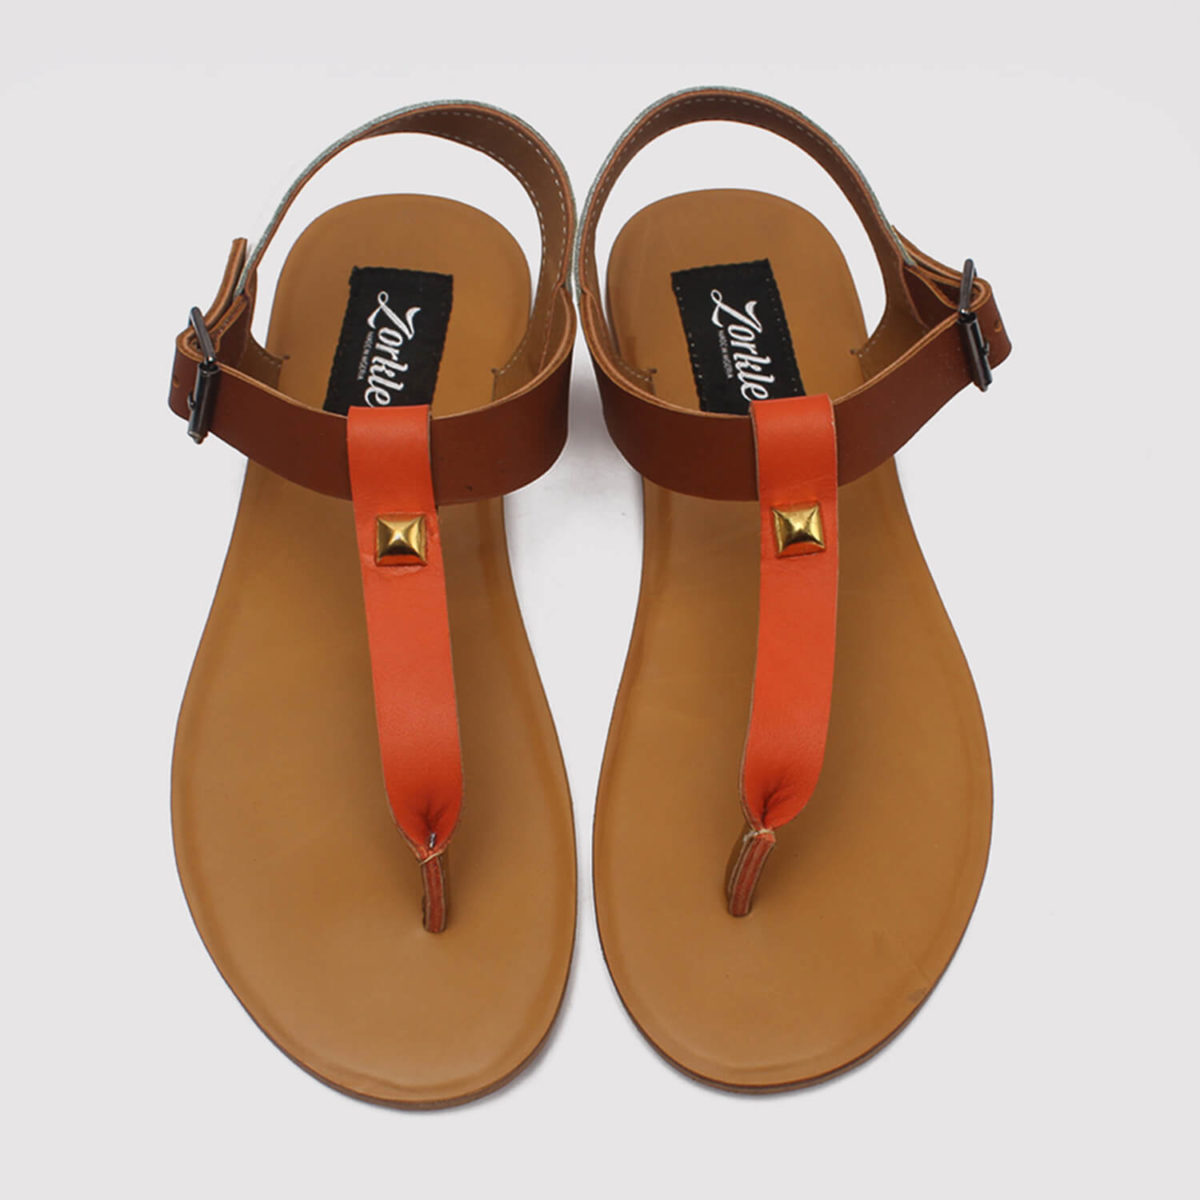 toke sandals orange brown white zorkle shoes lagos nigeria